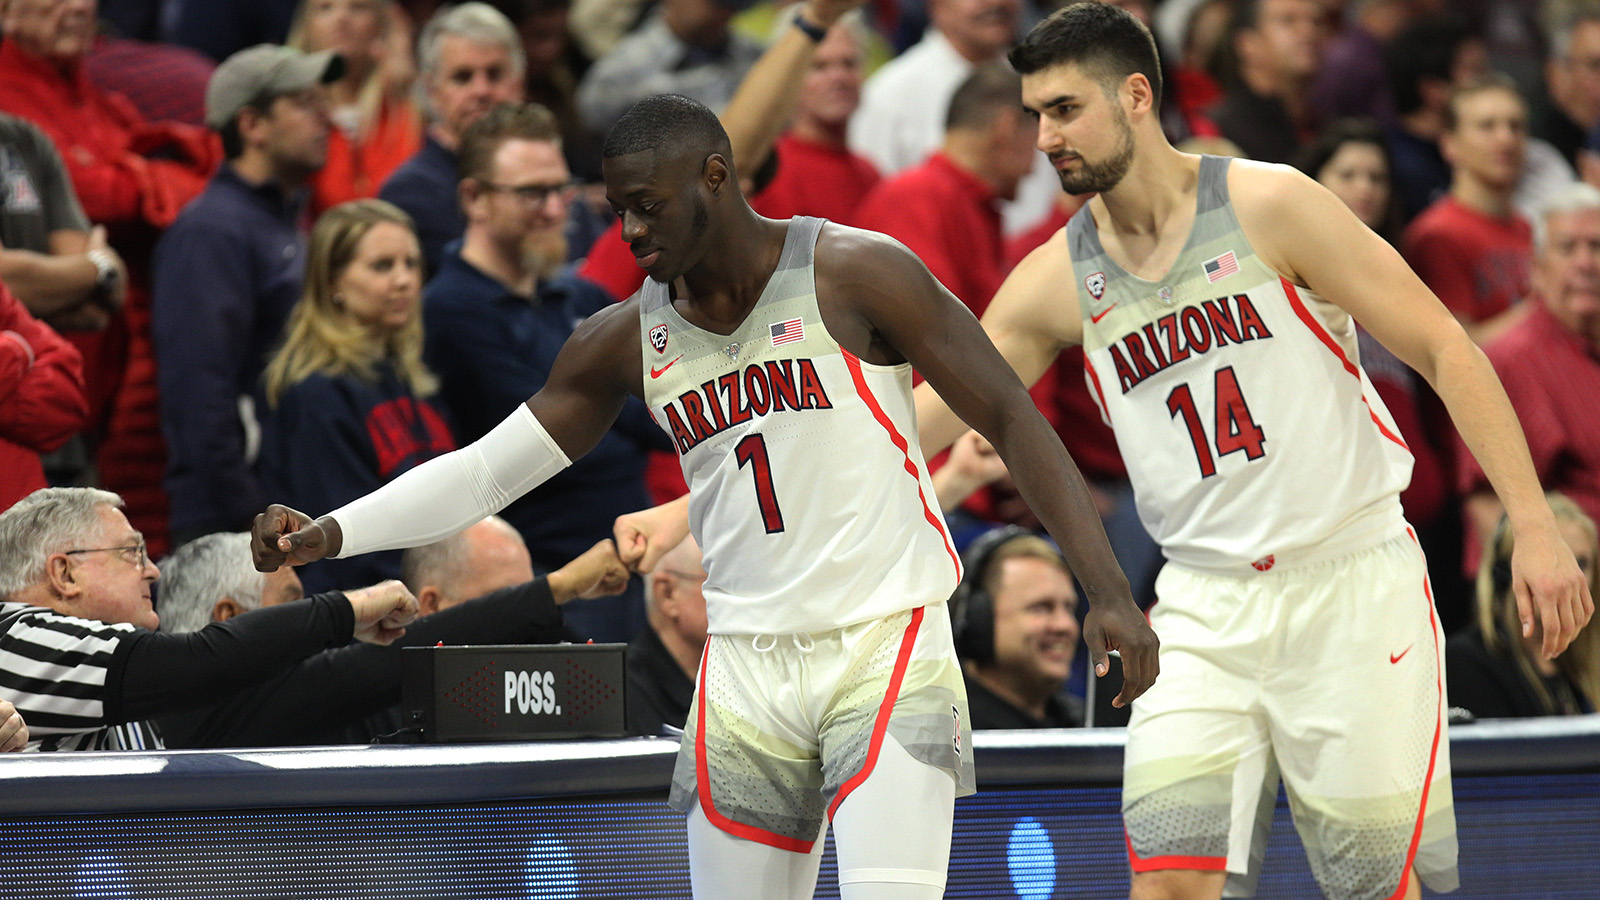 b17dfa8c19a UA Heads For the Mountains In First Pac-12 Road Trip - University of ...